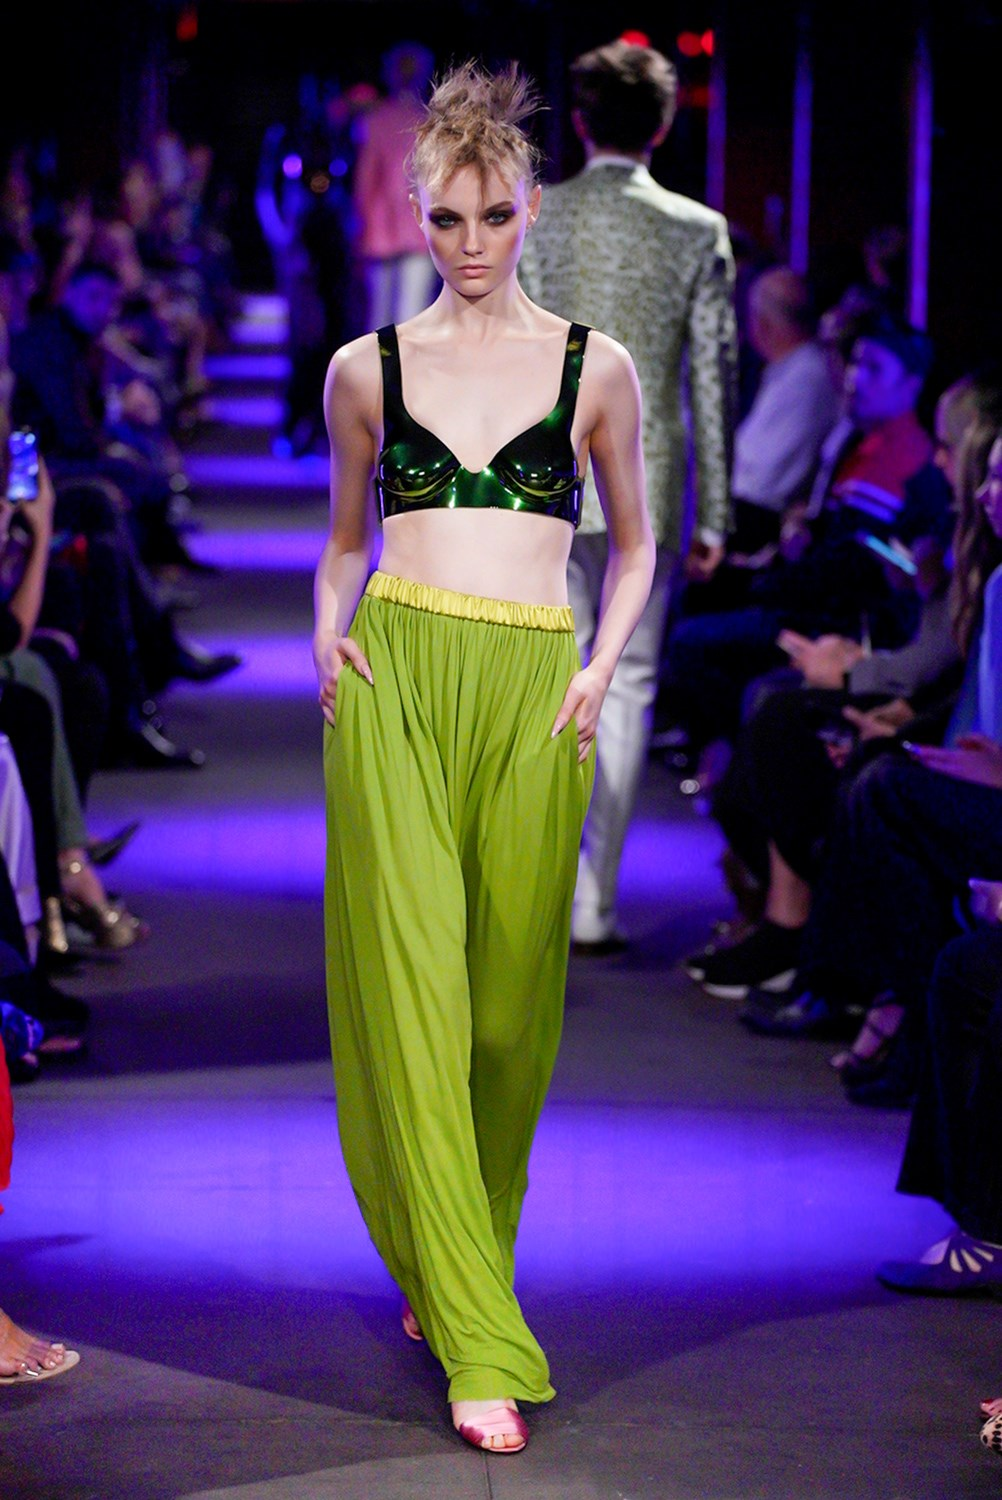 Top 10 Fashion Show Models of 2019 Photos